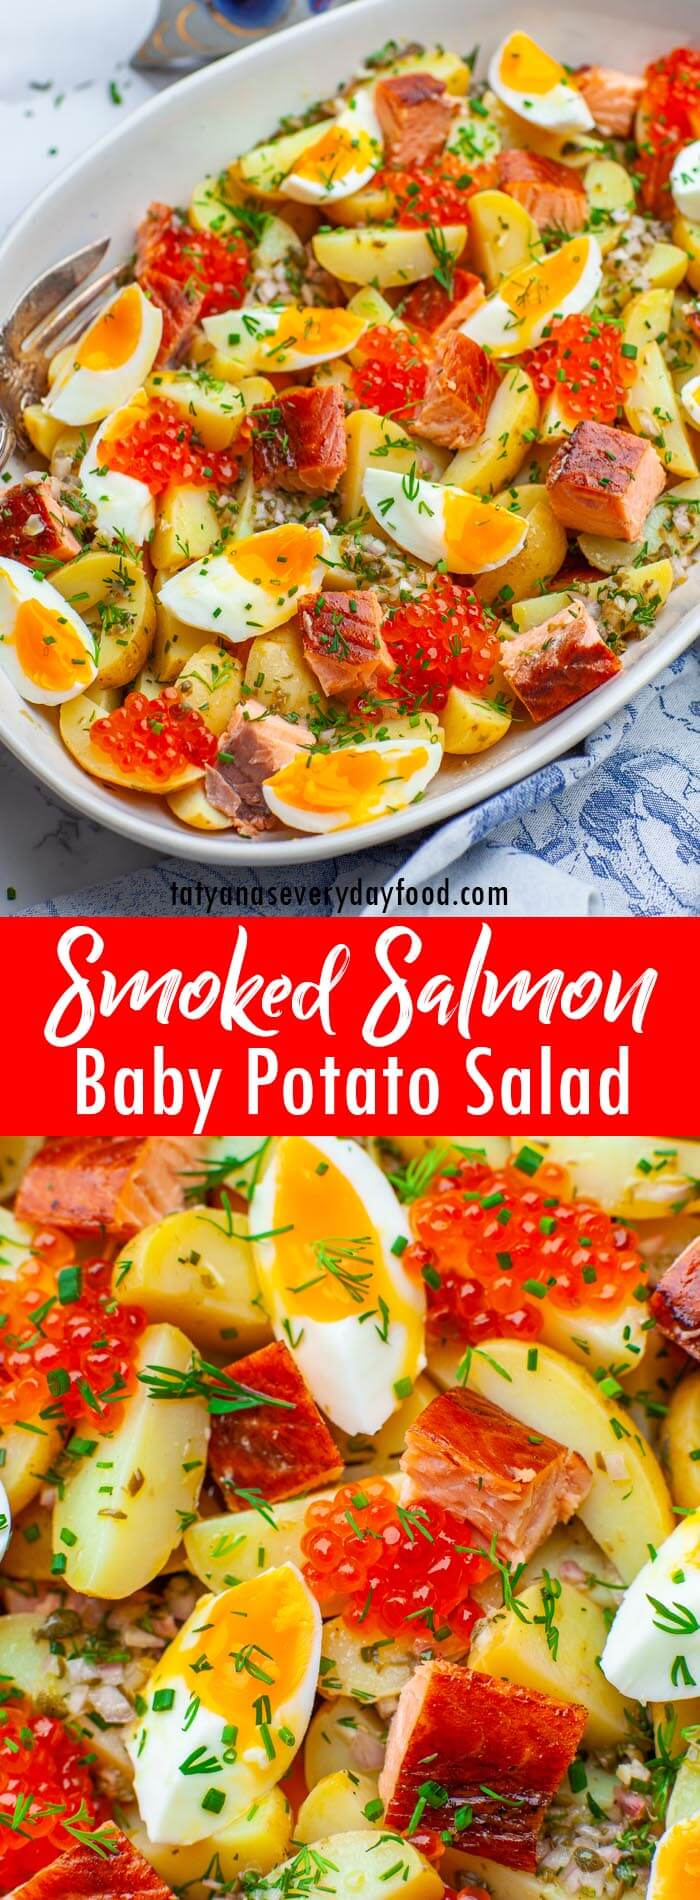 Video recipe for smoked salmon salad